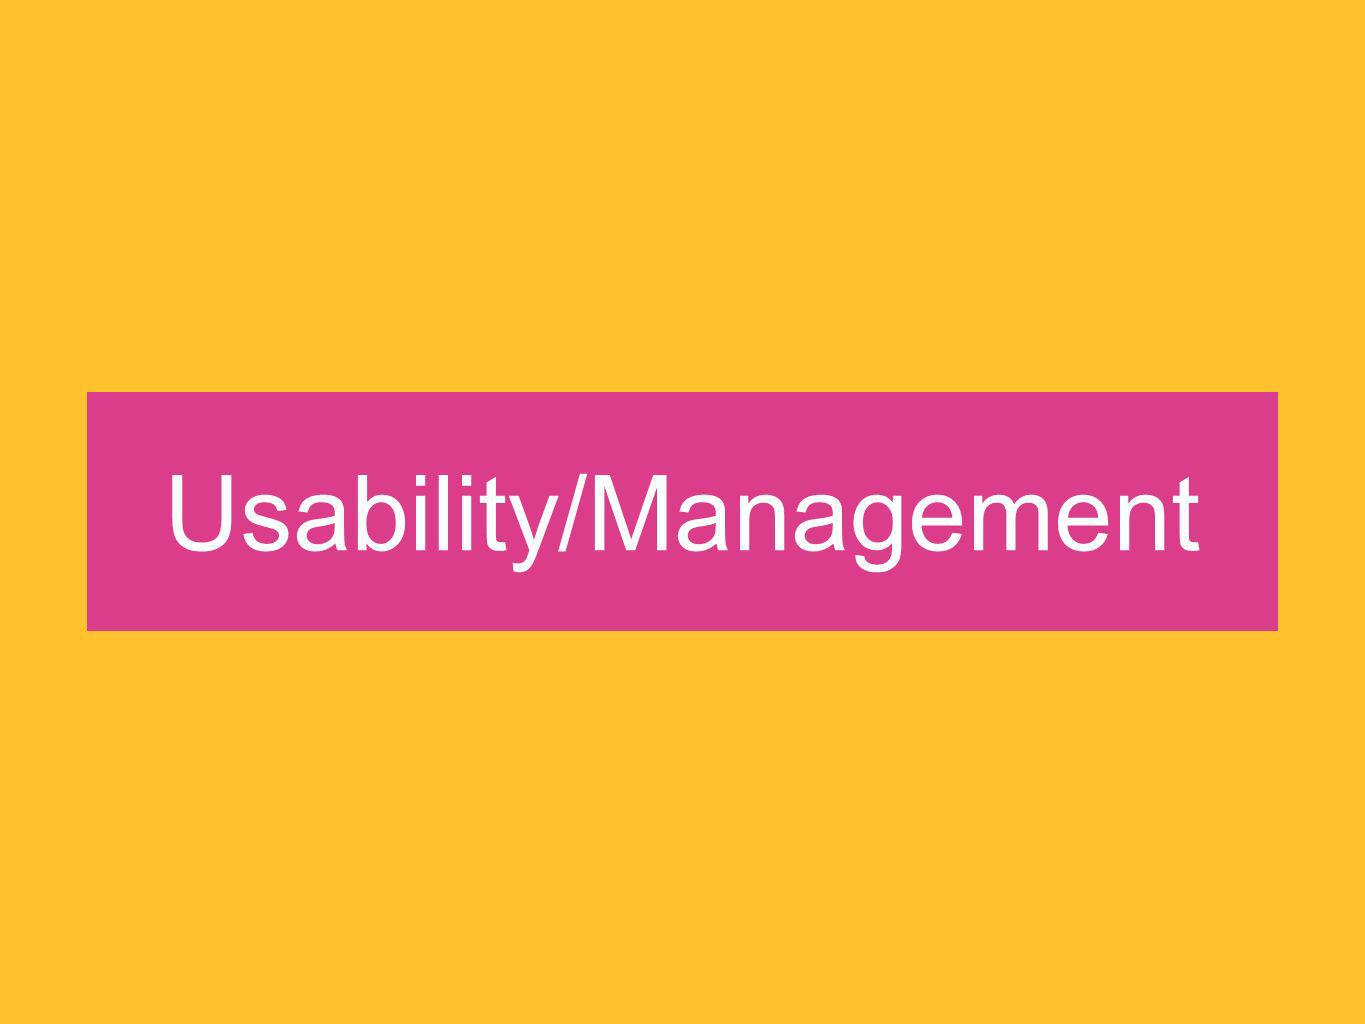 Usability/Management